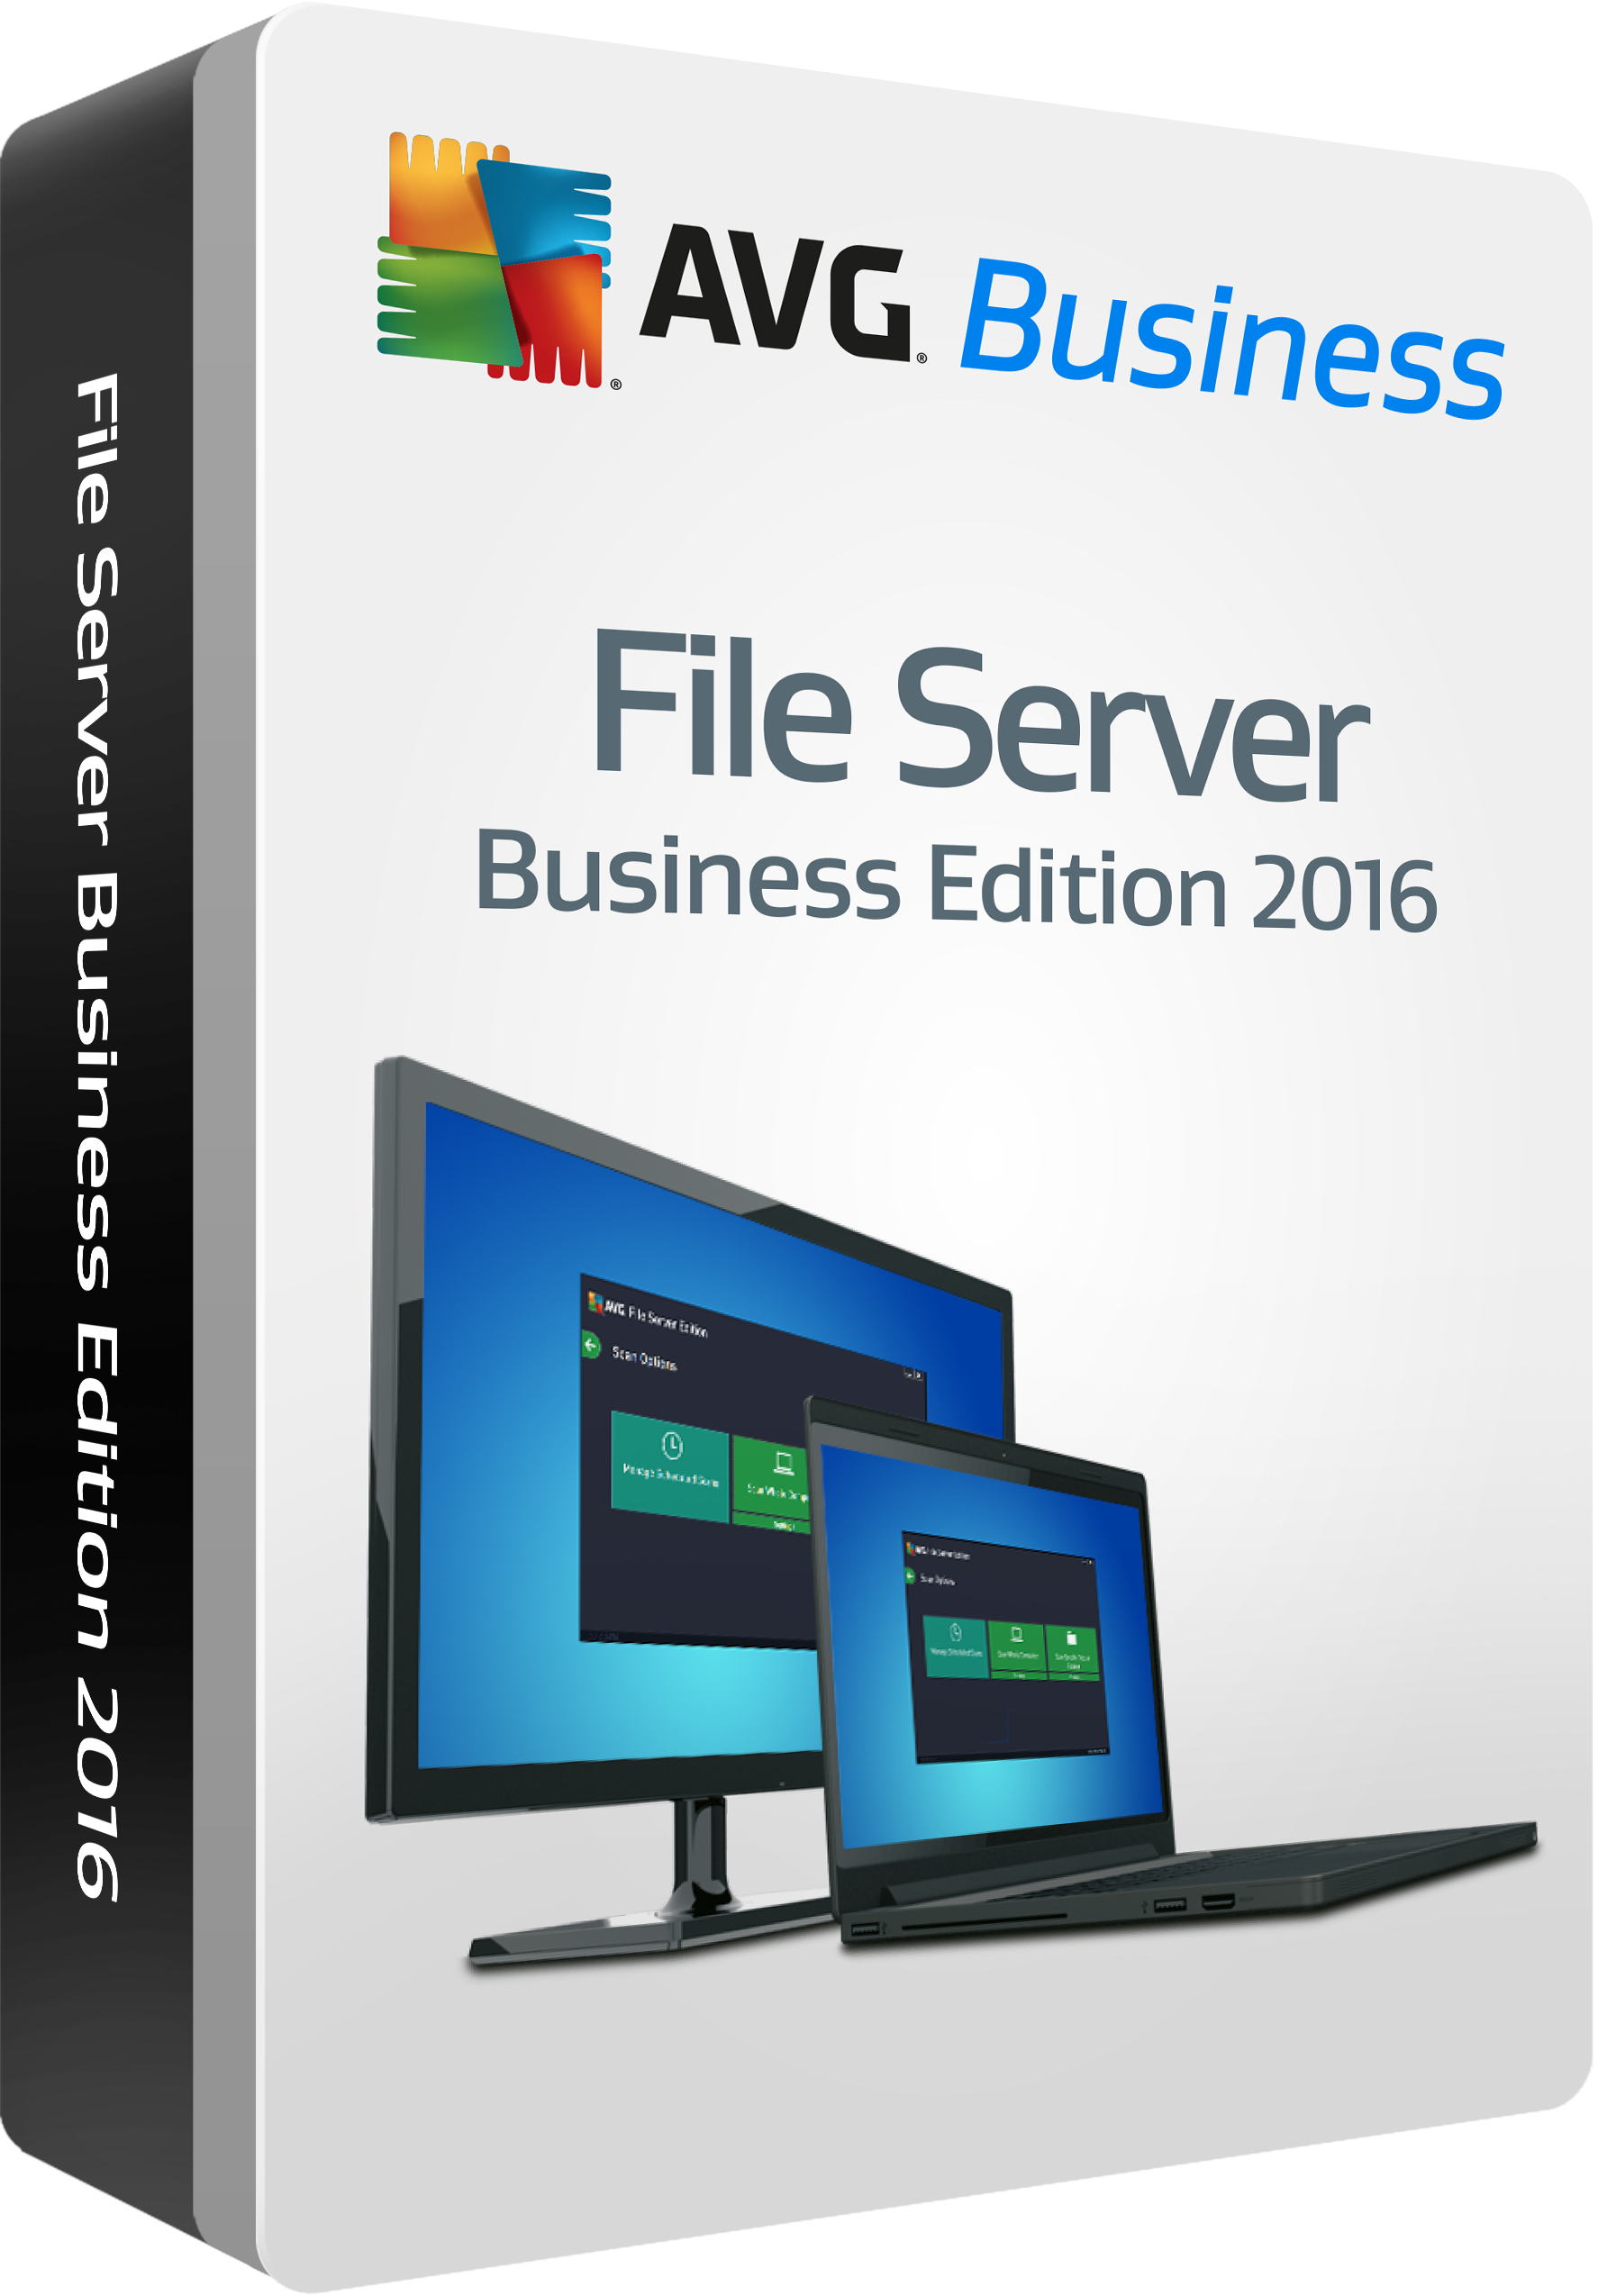 AVG File Server Edition, 1 year 2 computers